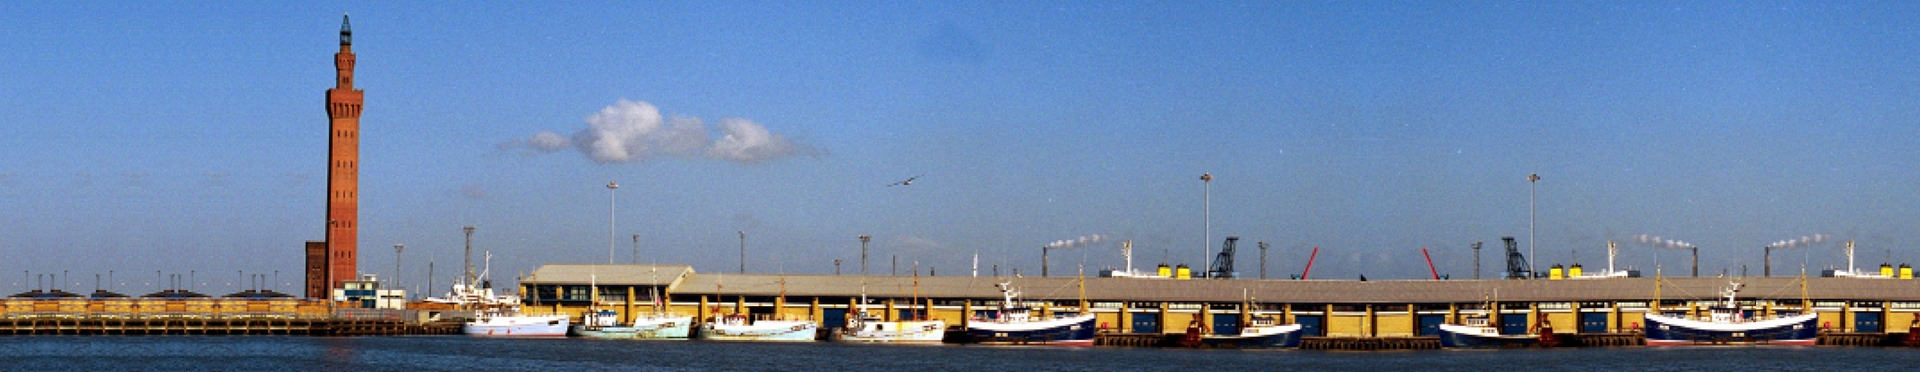 Grimsby Tower & Harbour